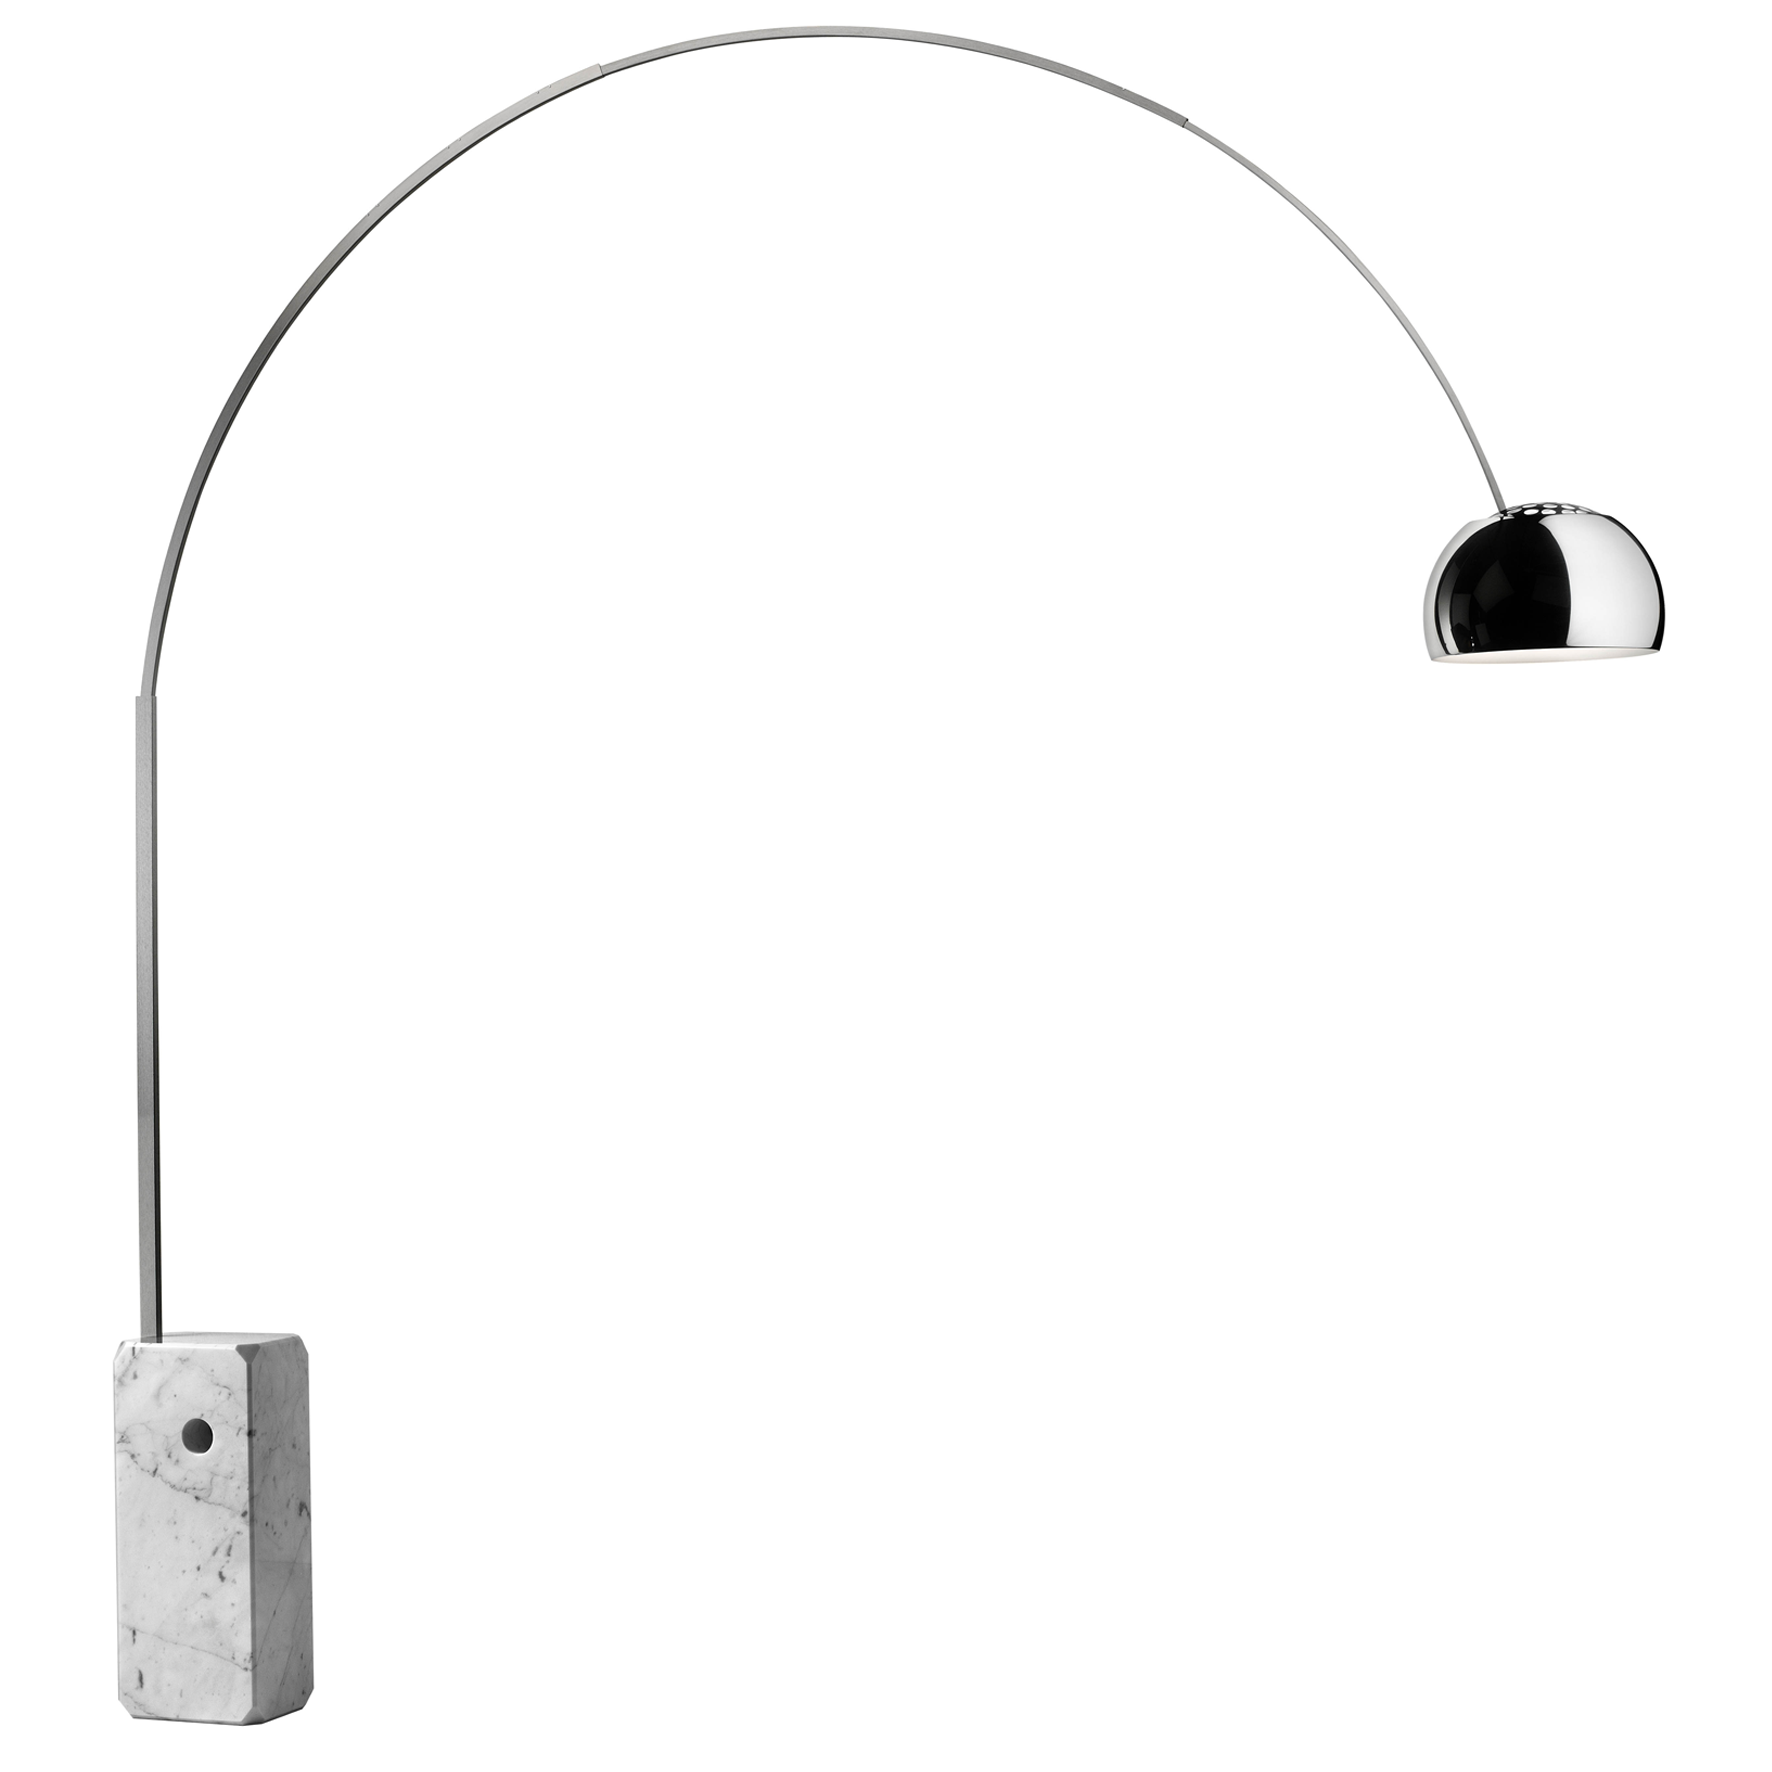 Arco - Achille and Pier Giacomo Castiglioni, 1962 -Flos - price on request - Flos.com